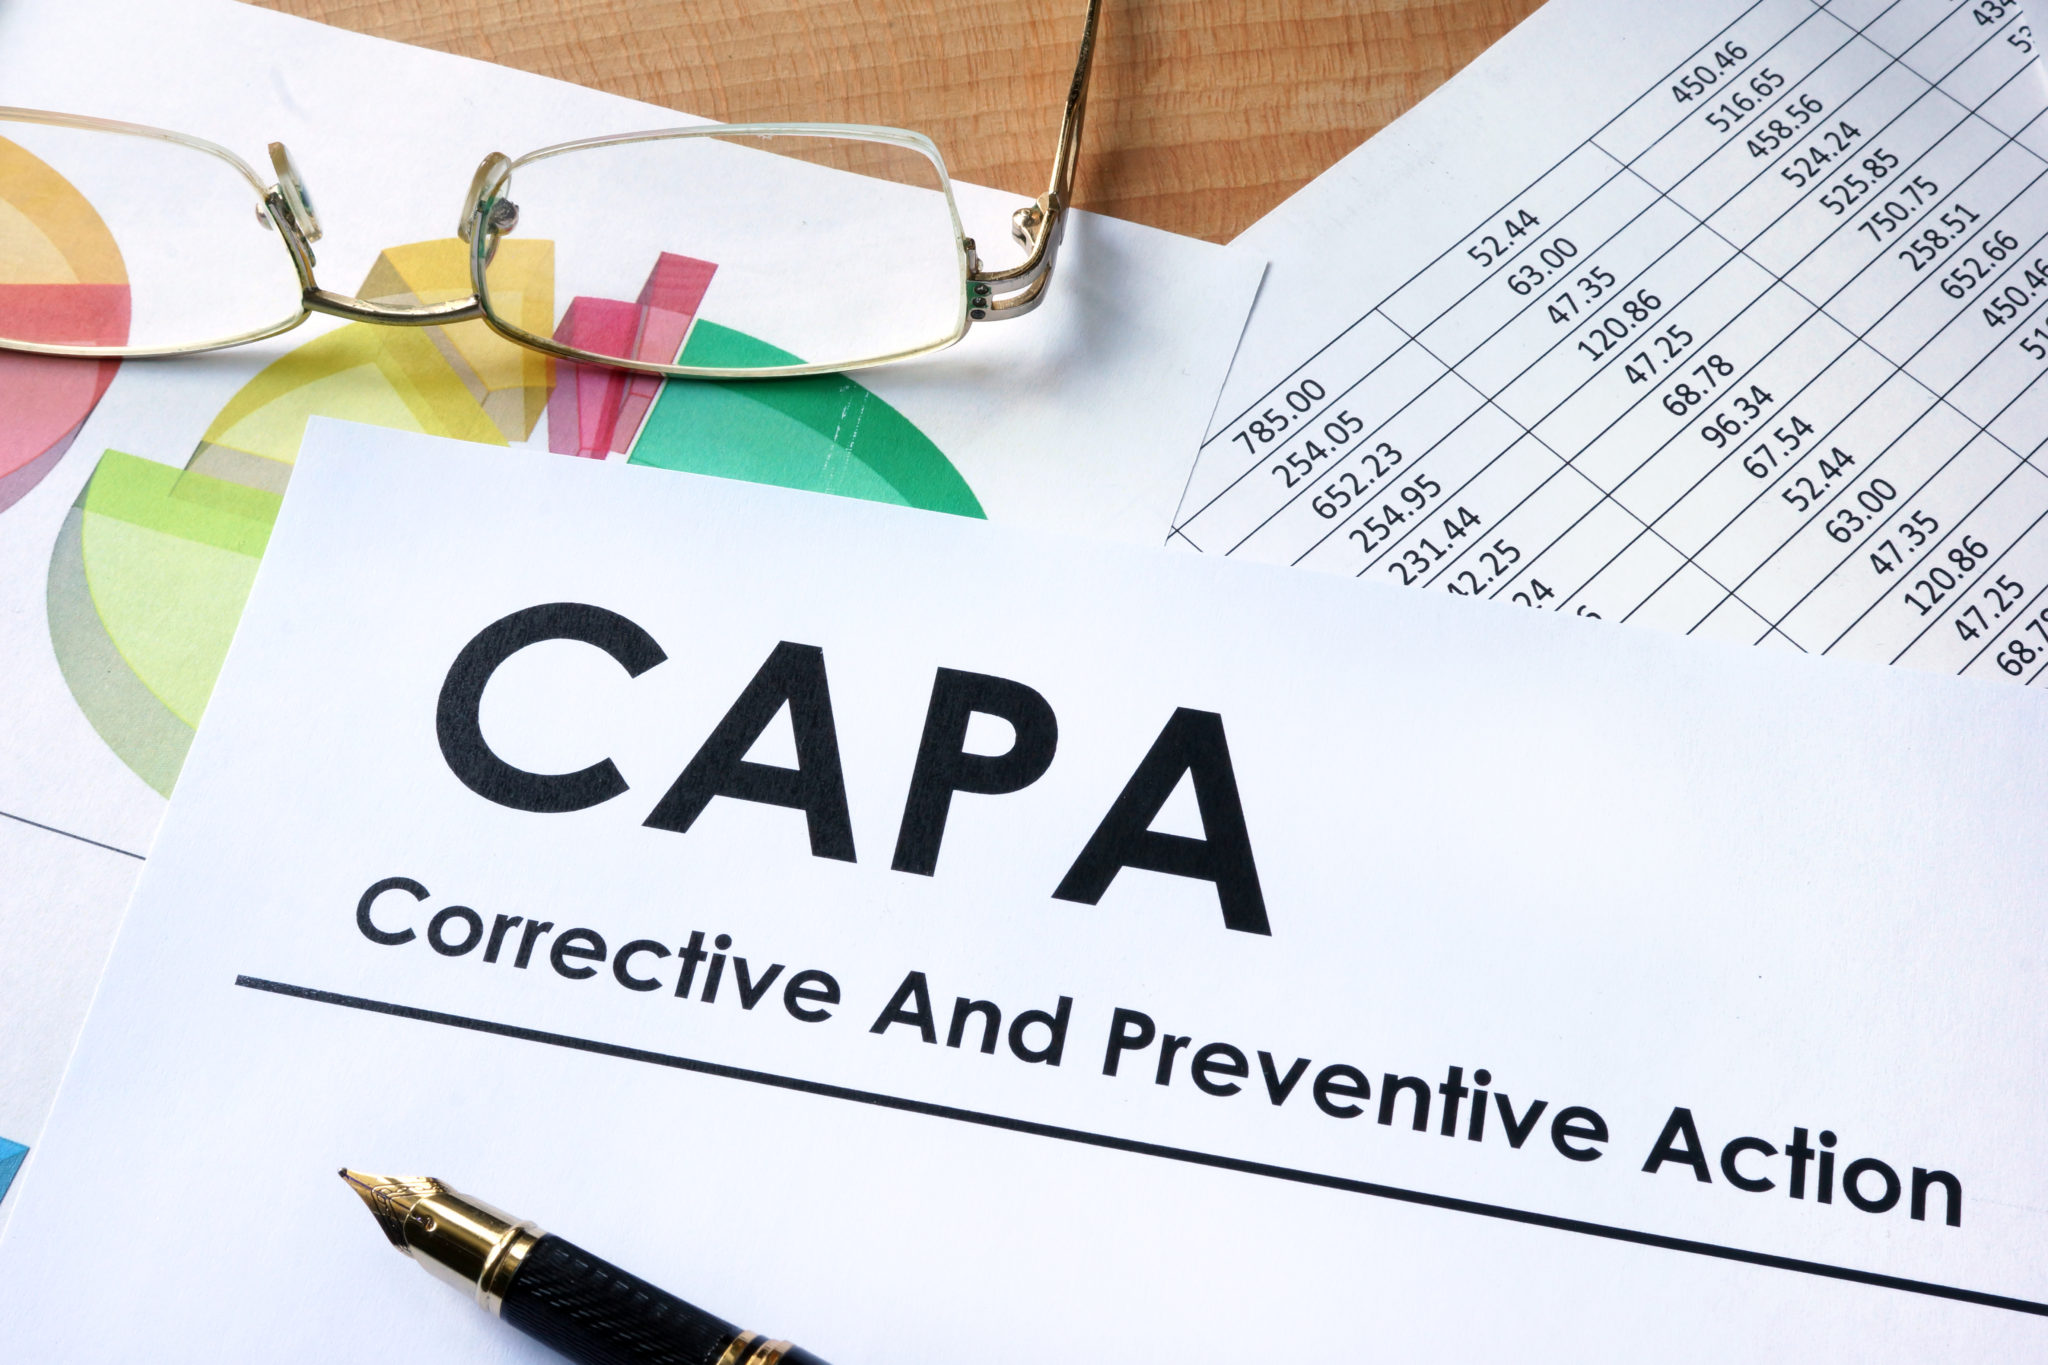 Corrective and Preventive Action